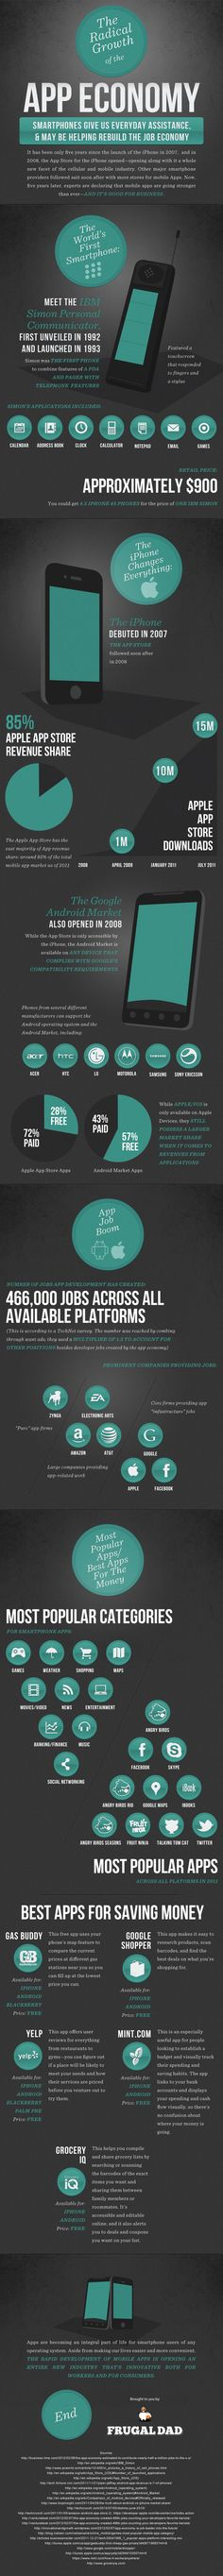 The radical growth of the APP economy #infographic